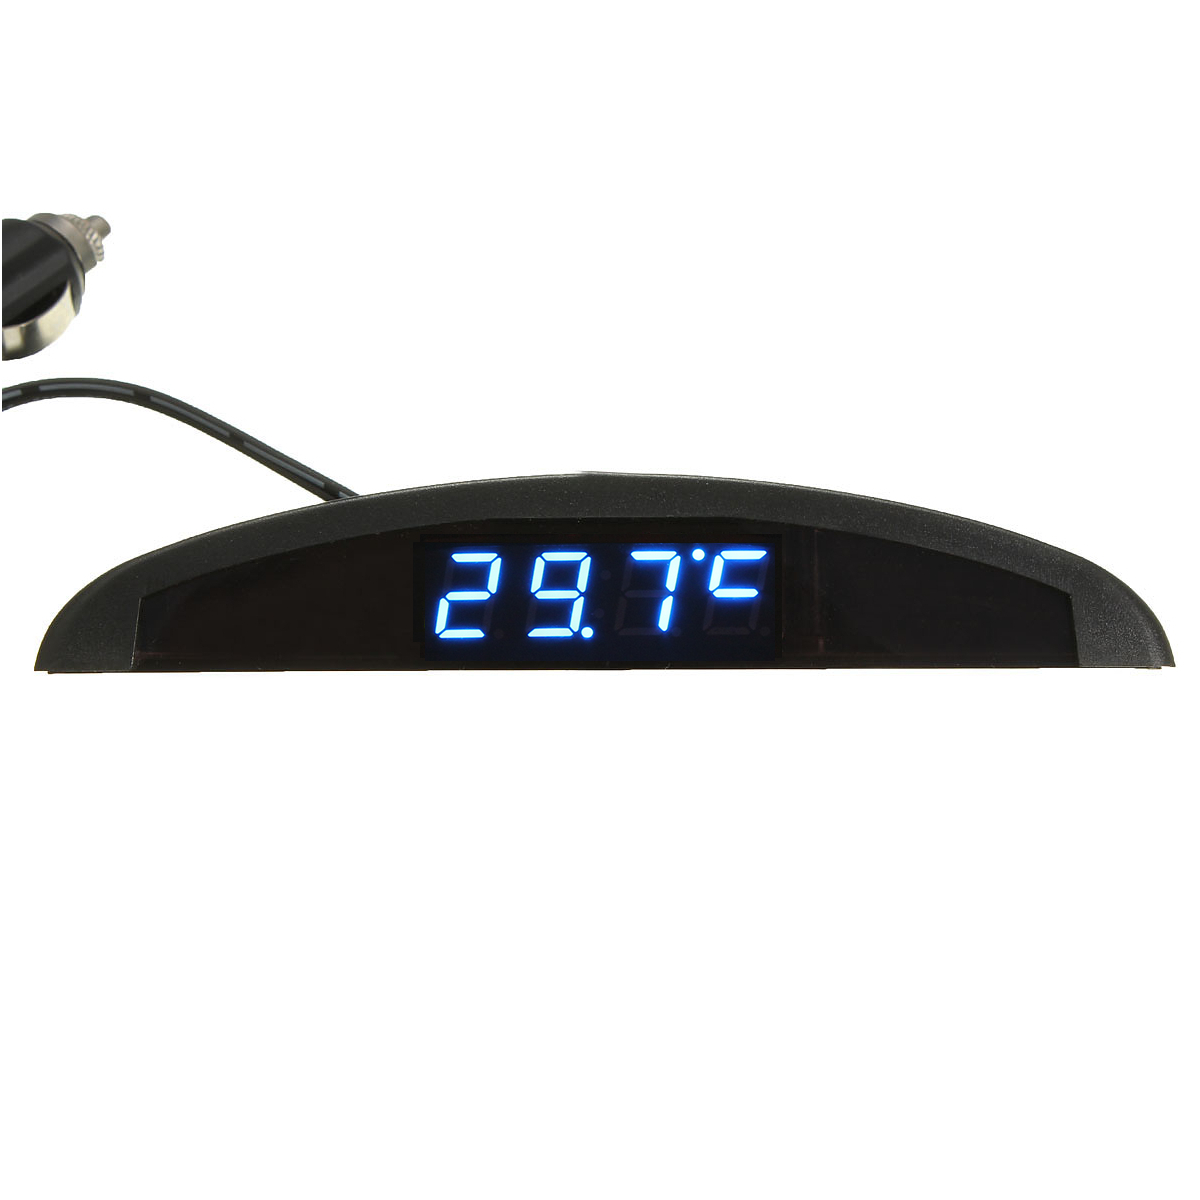 New 12V 3 In 1 Function LED Digital Auto Clock /Digital Voltmeter /Thermometer